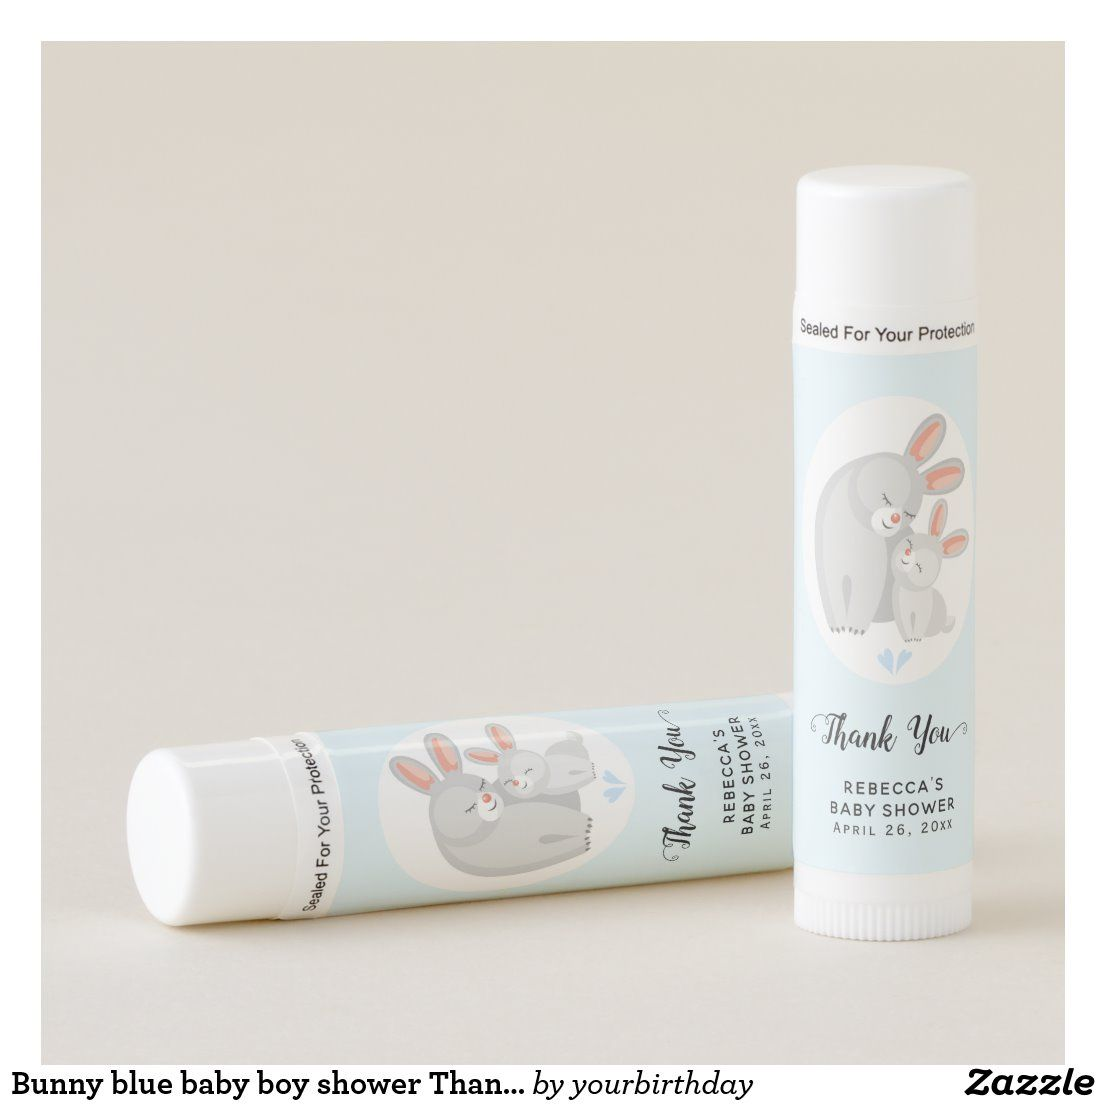 Bunny blue baby boy shower Thank You favor Lip Balm #lipbalm #babyshowerfavor #thankyou #babyboy